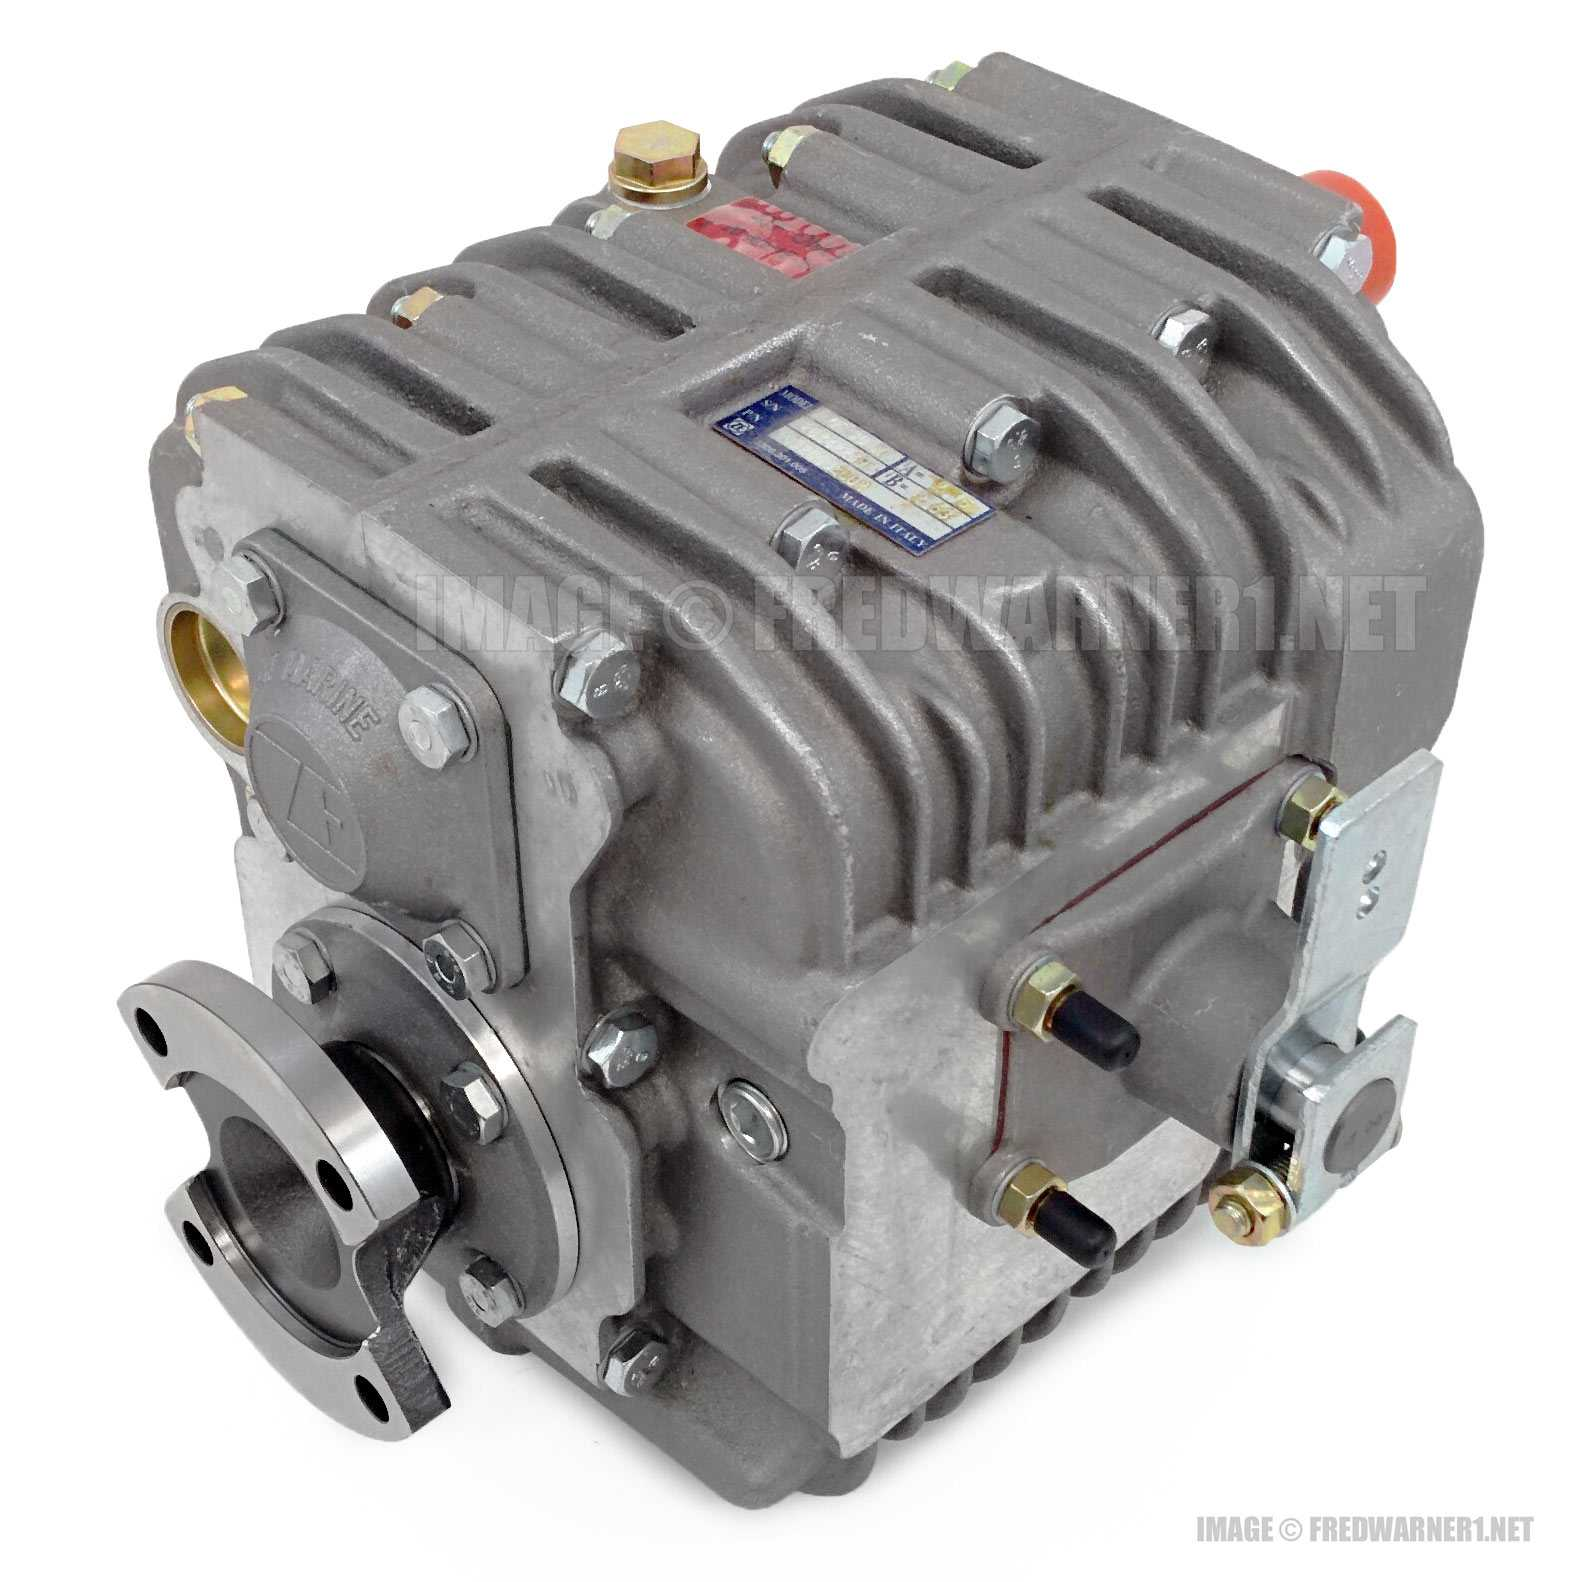 ZF 30M 2 7:1 Marine Boat Transmission Gearbox 3320002001 Hurth Mechanical